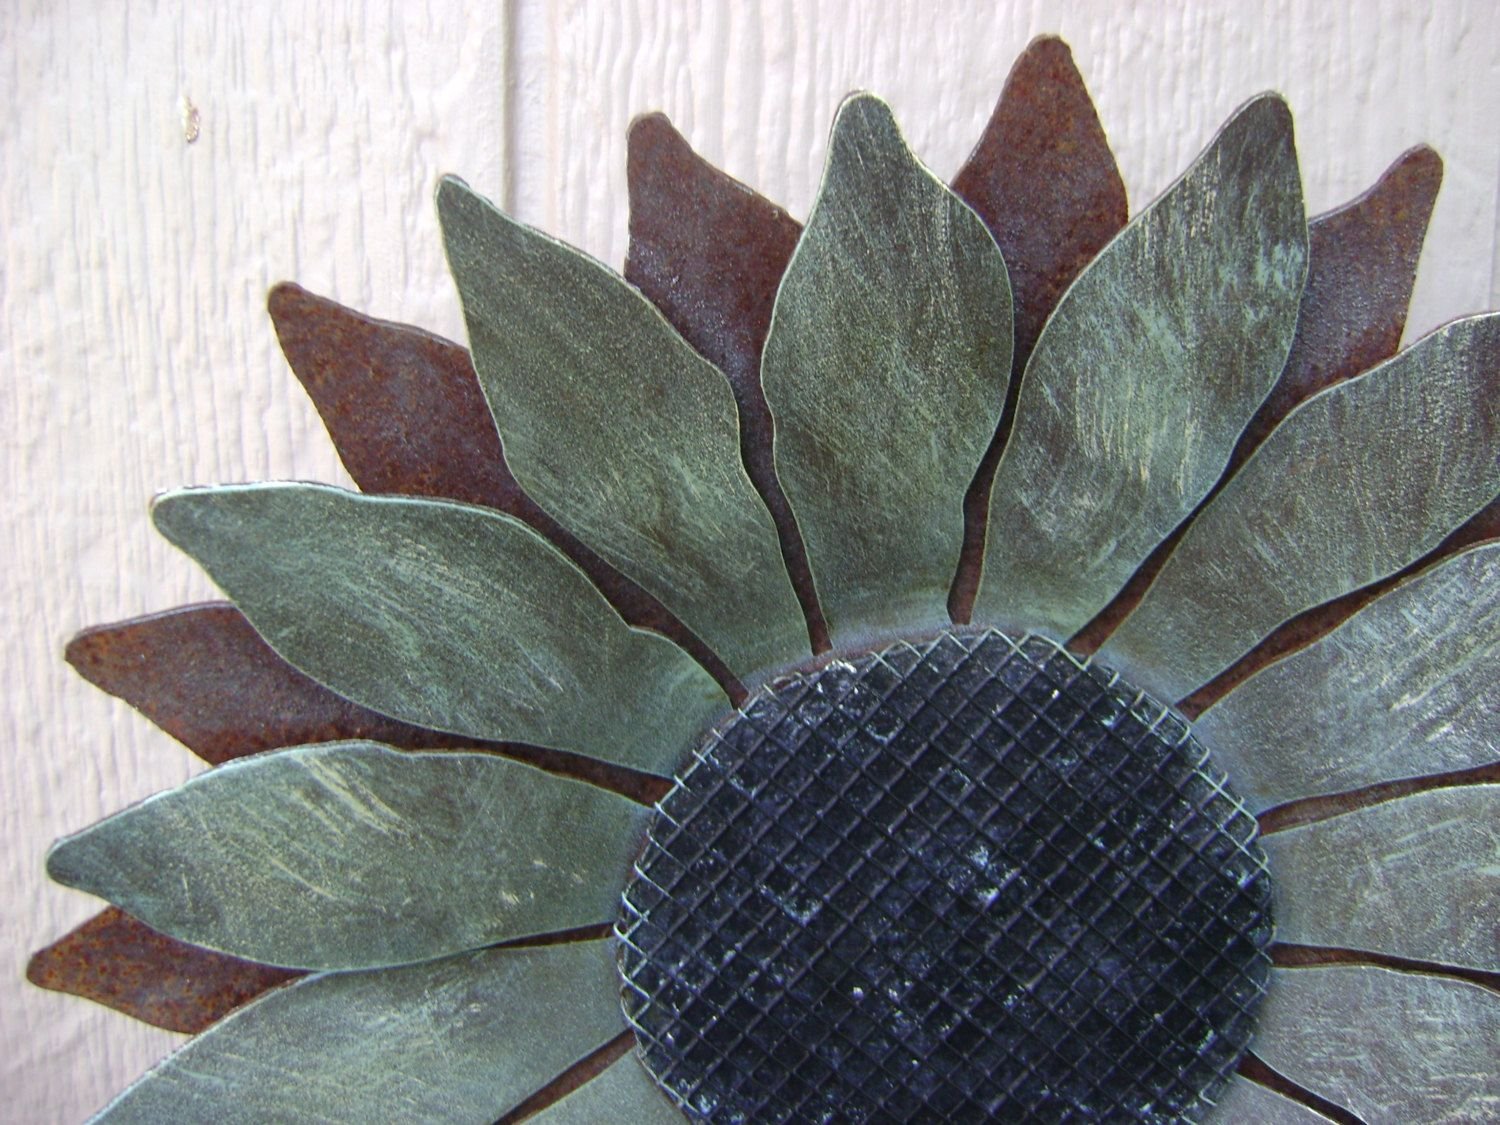 Metal Flower Wall Hanging Sunflower Metal Garden Art Rusty Metal Sunflower Wall Art